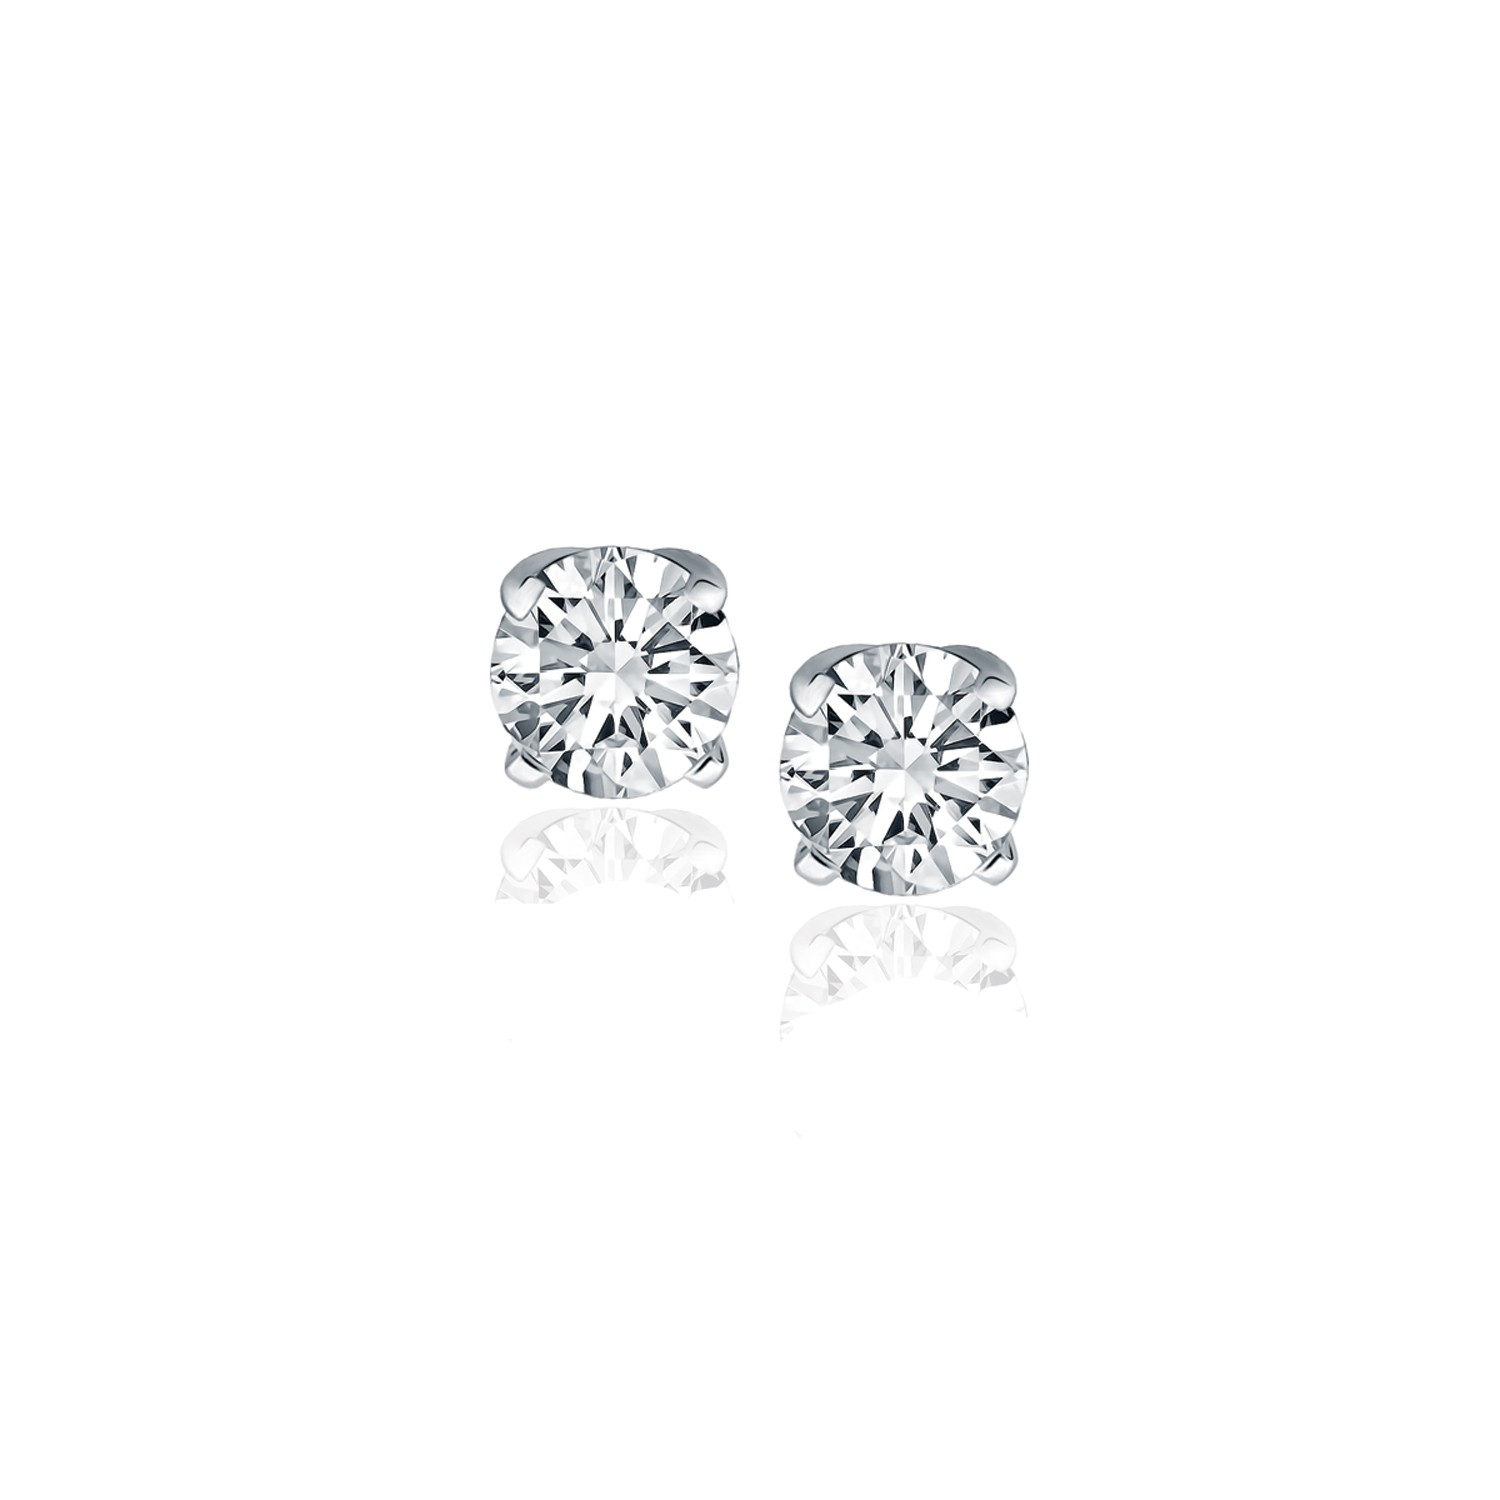 ctw vs round earrings i in diamond white three gold prong martini stud h